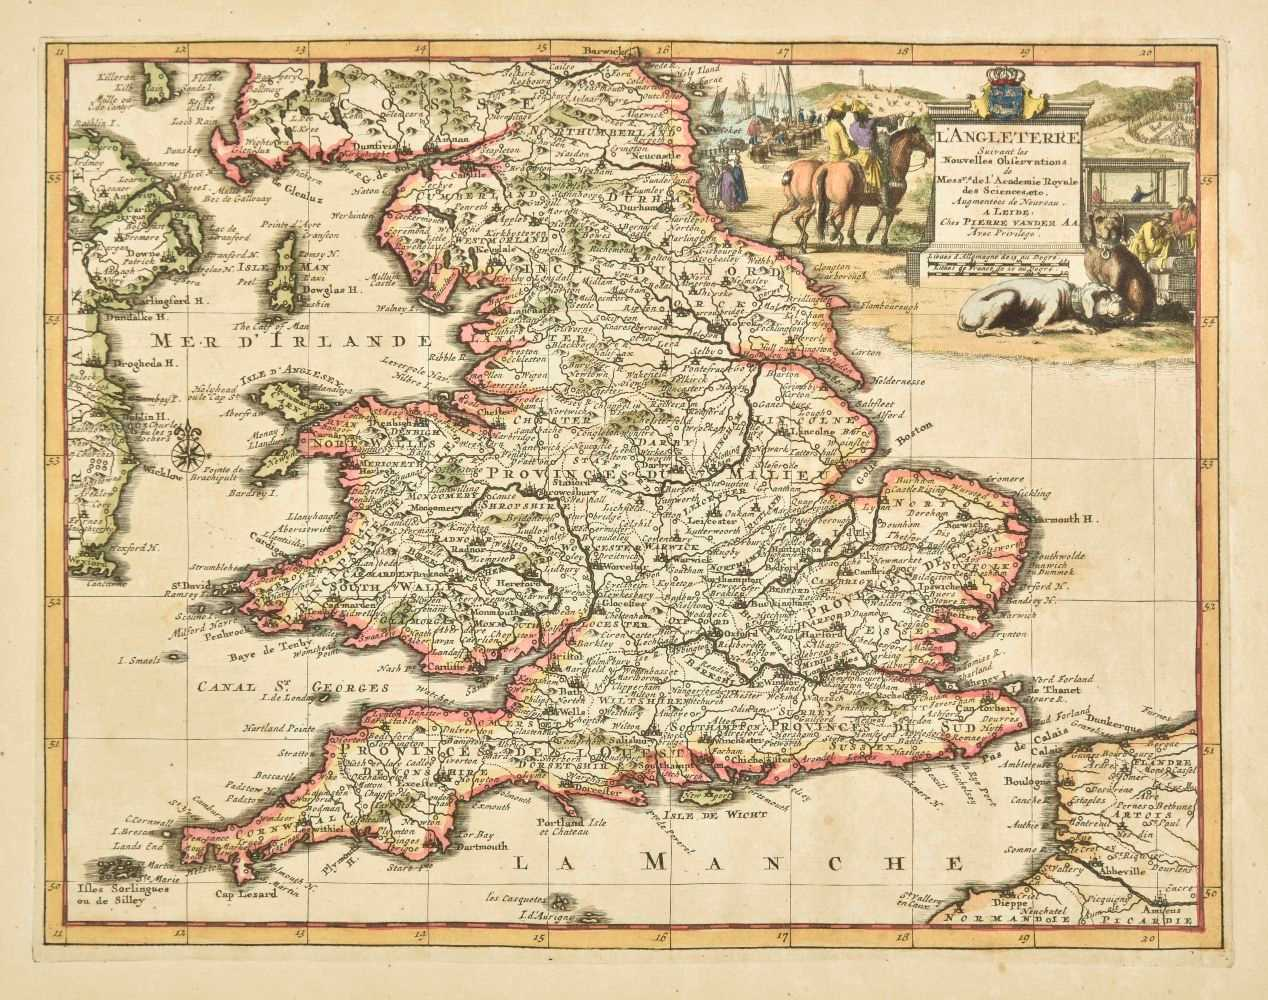 Lot 29-England & Wales. A collection of ten maps, mostly 18th century